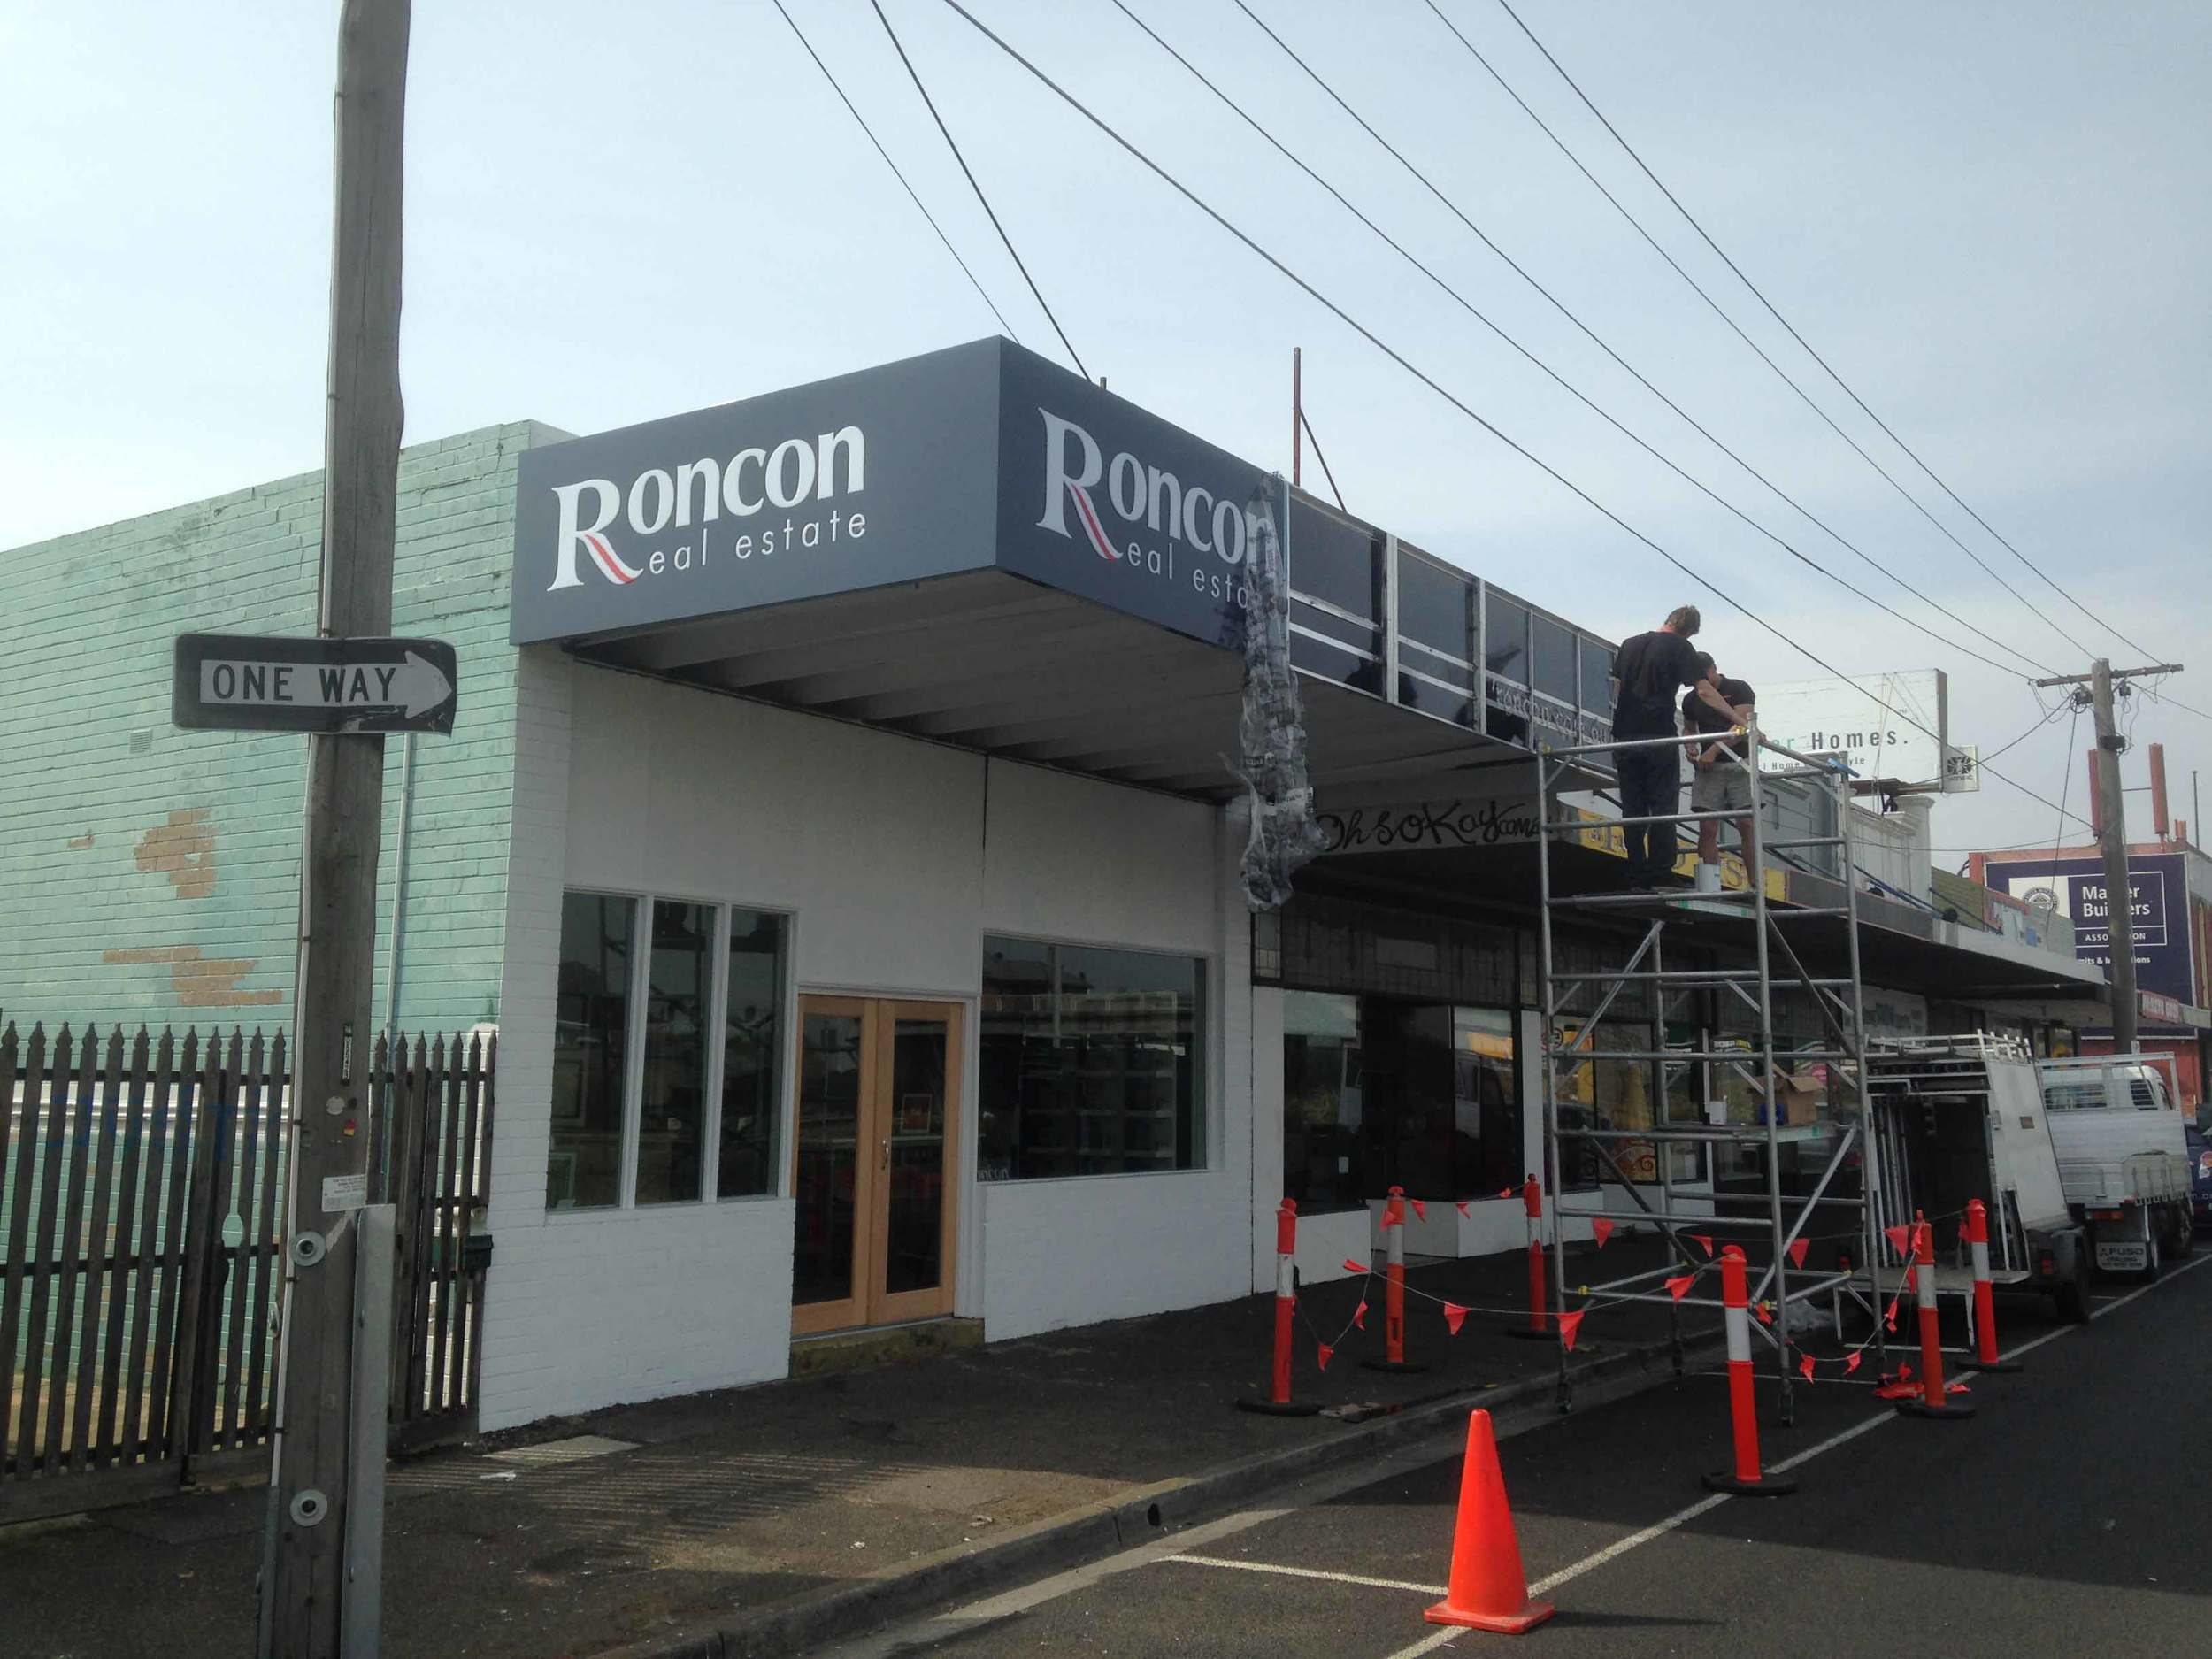 Roncon-Real-Estate-Corporate-Signs-Geelong.jpg